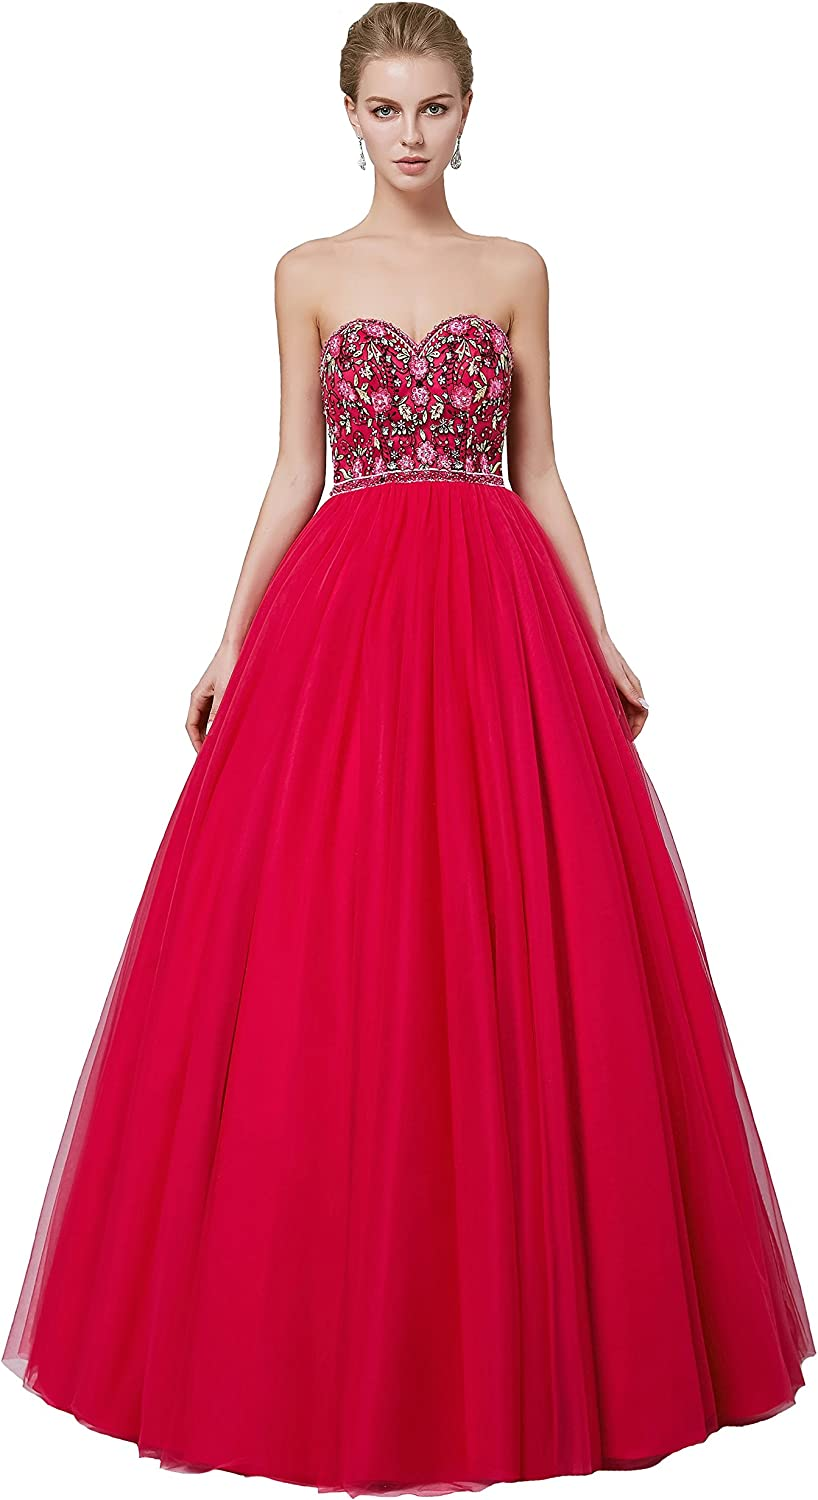 CuteShe Women's Colour Embroider Prom Homecoming Quinceanera Dresses Ball Gown Strapless